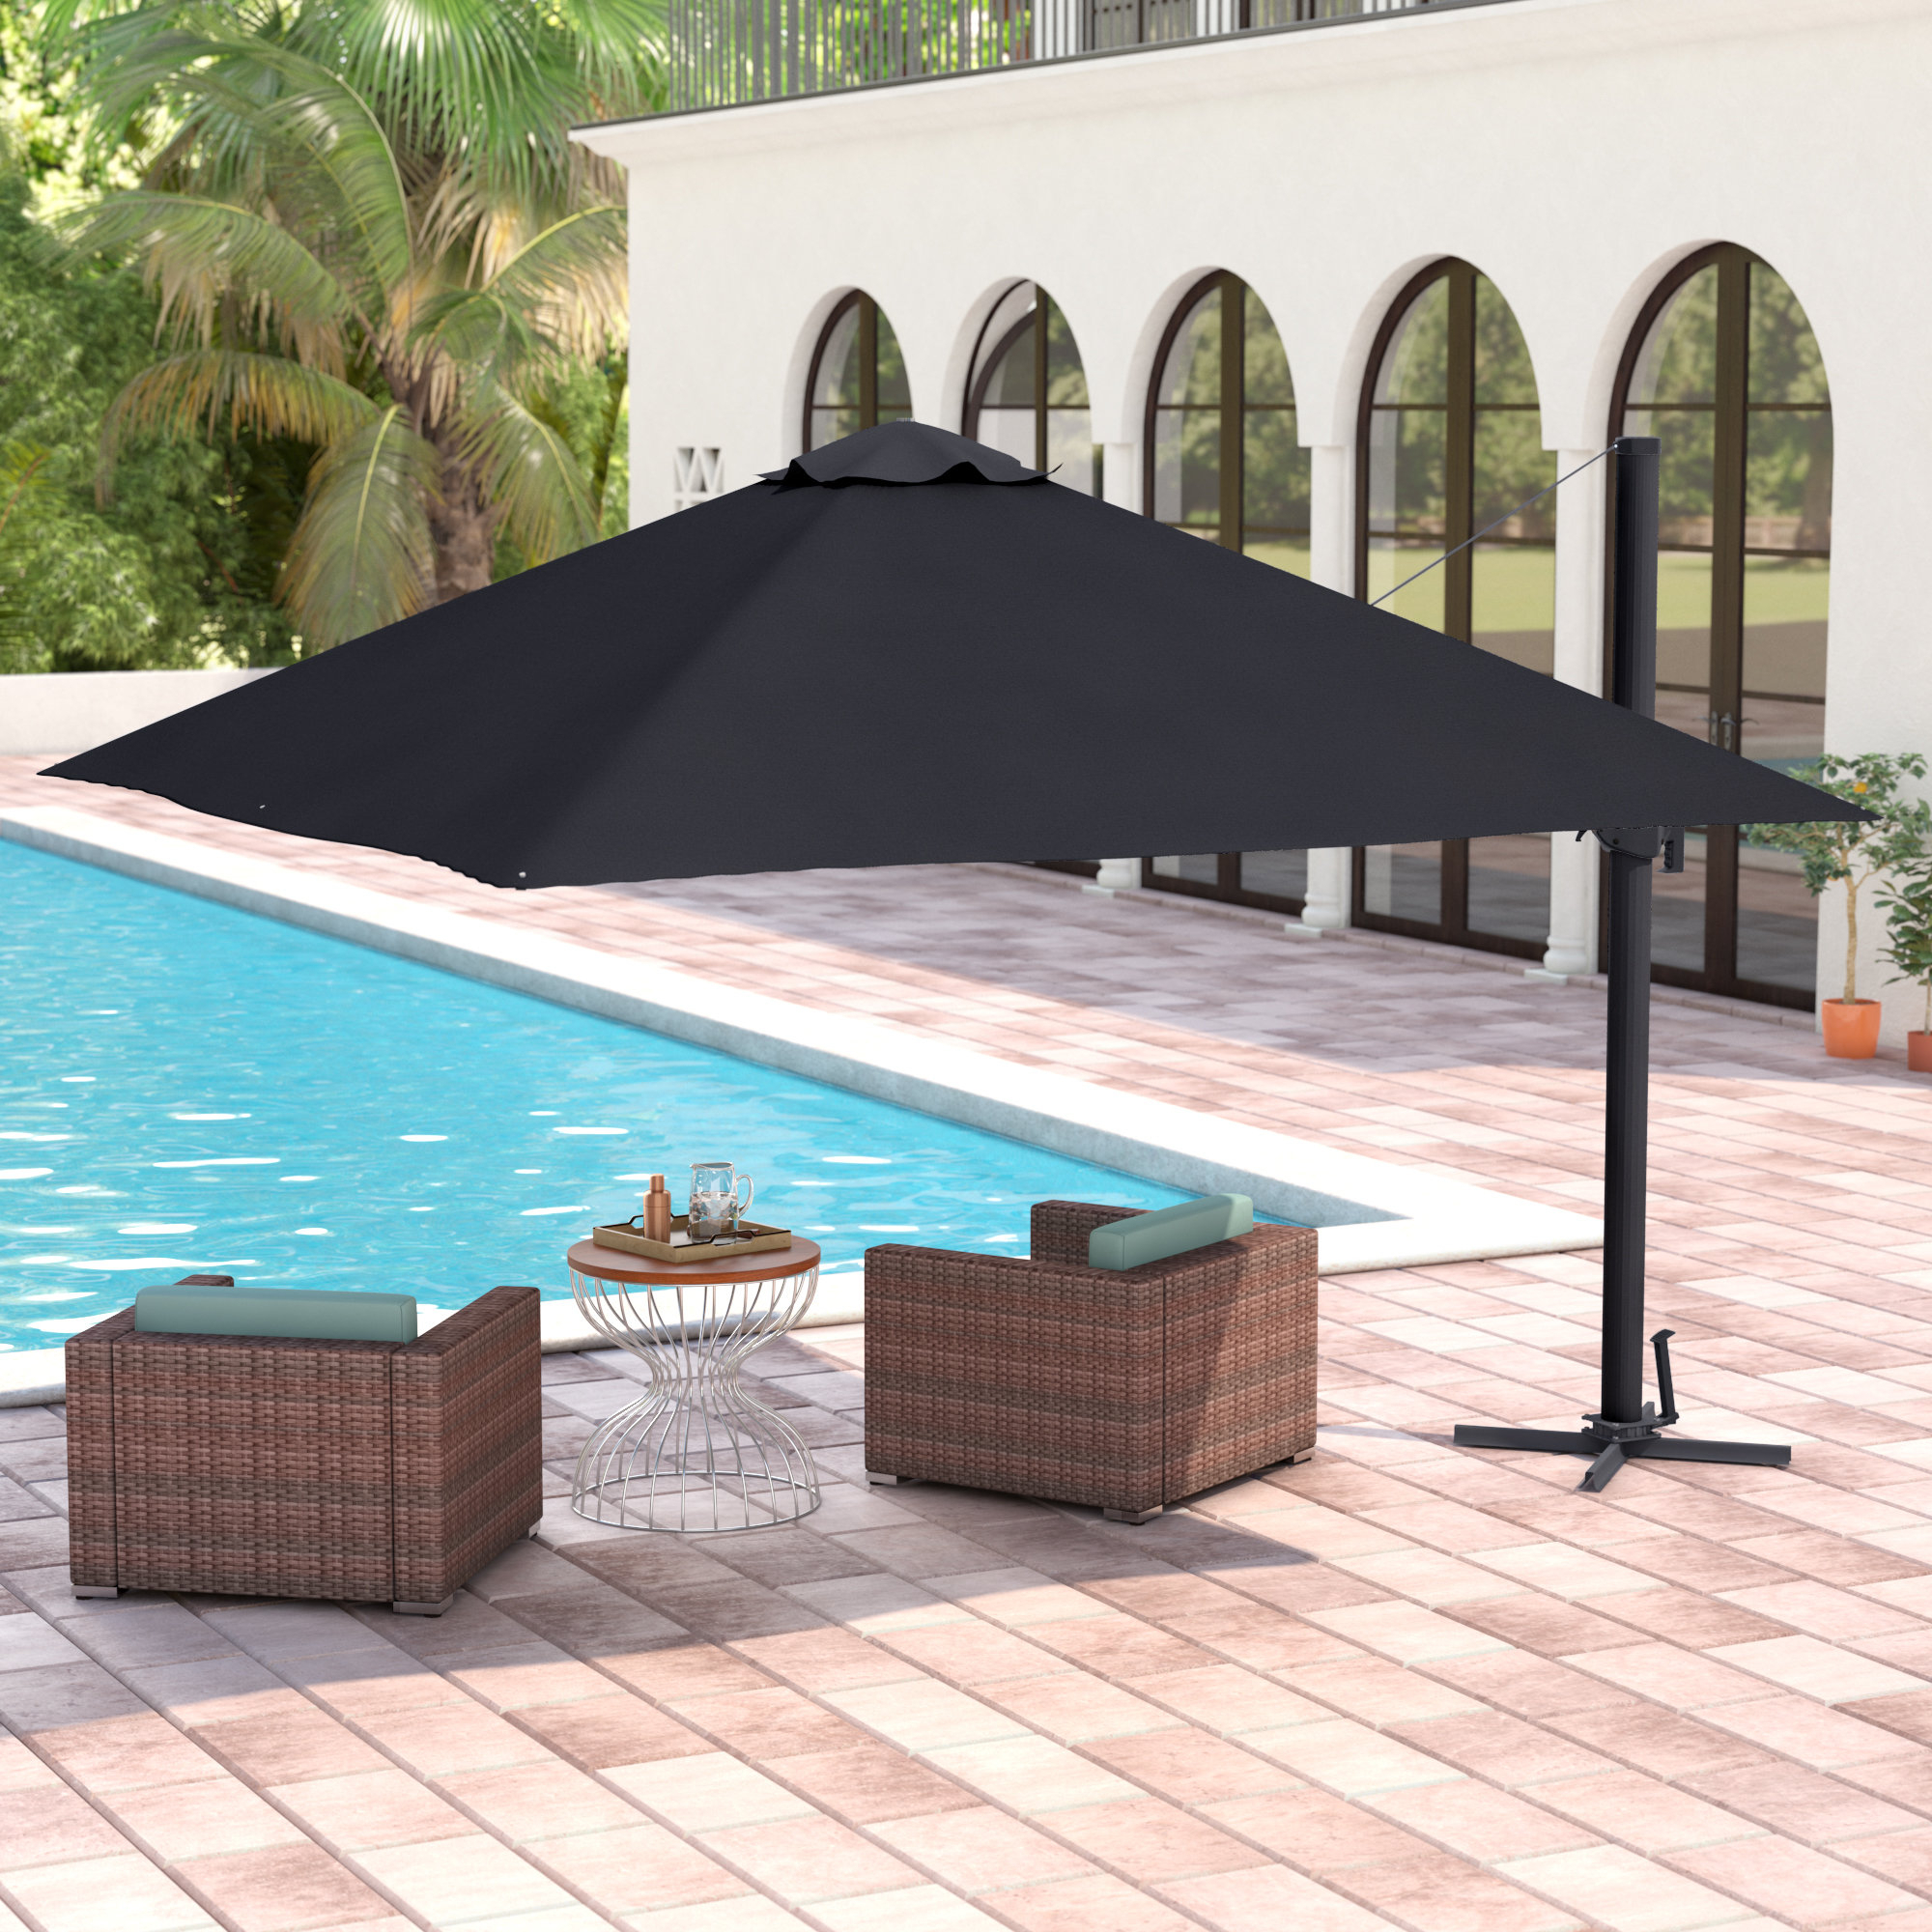 Grote Liberty Aluminum Square Cantilever Umbrella For Widely Used Maidste Square Cantilever Umbrellas (View 5 of 20)